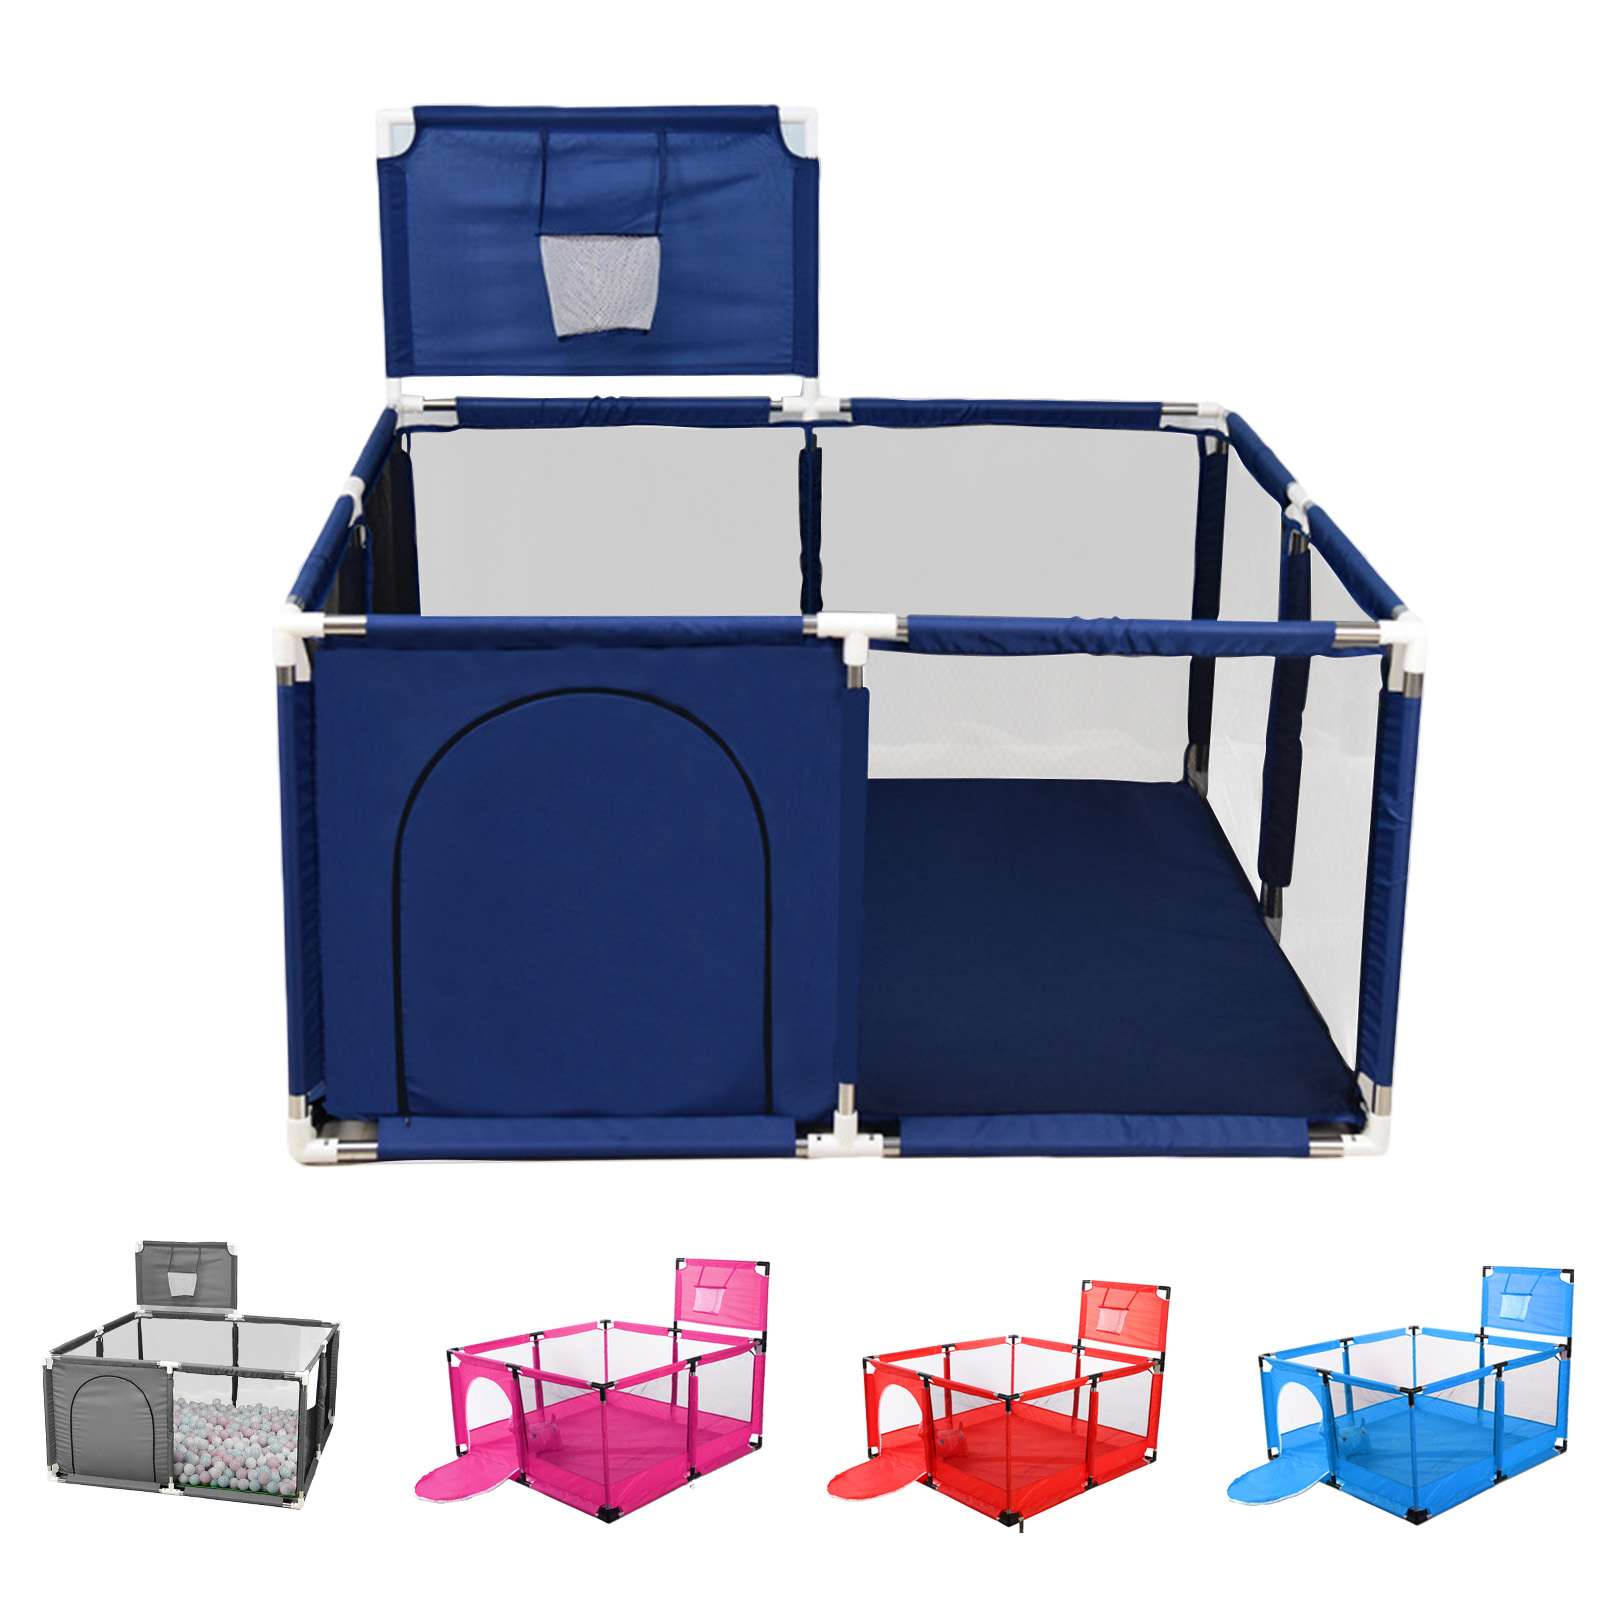 Giant Baby Game Fence With Shooting Frame Breathable Mesh Wall Baby Fence Activity Center Suitable For Indoor And Outdoor